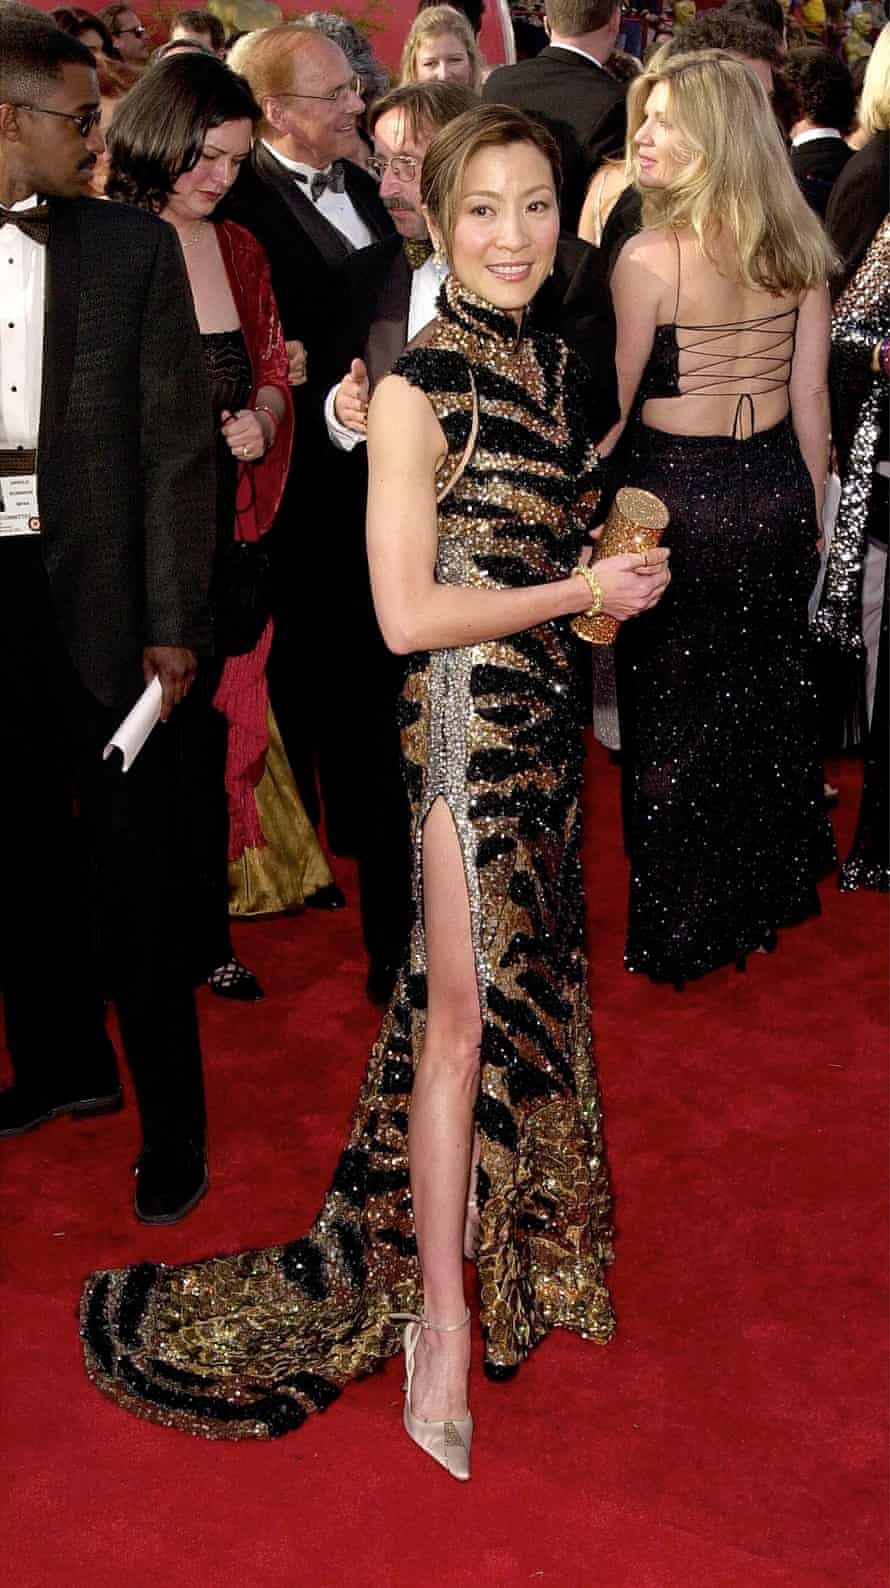 Actress Michelle Yeoh arrives for the 73rd Annual Academy Awards March 25, 2001